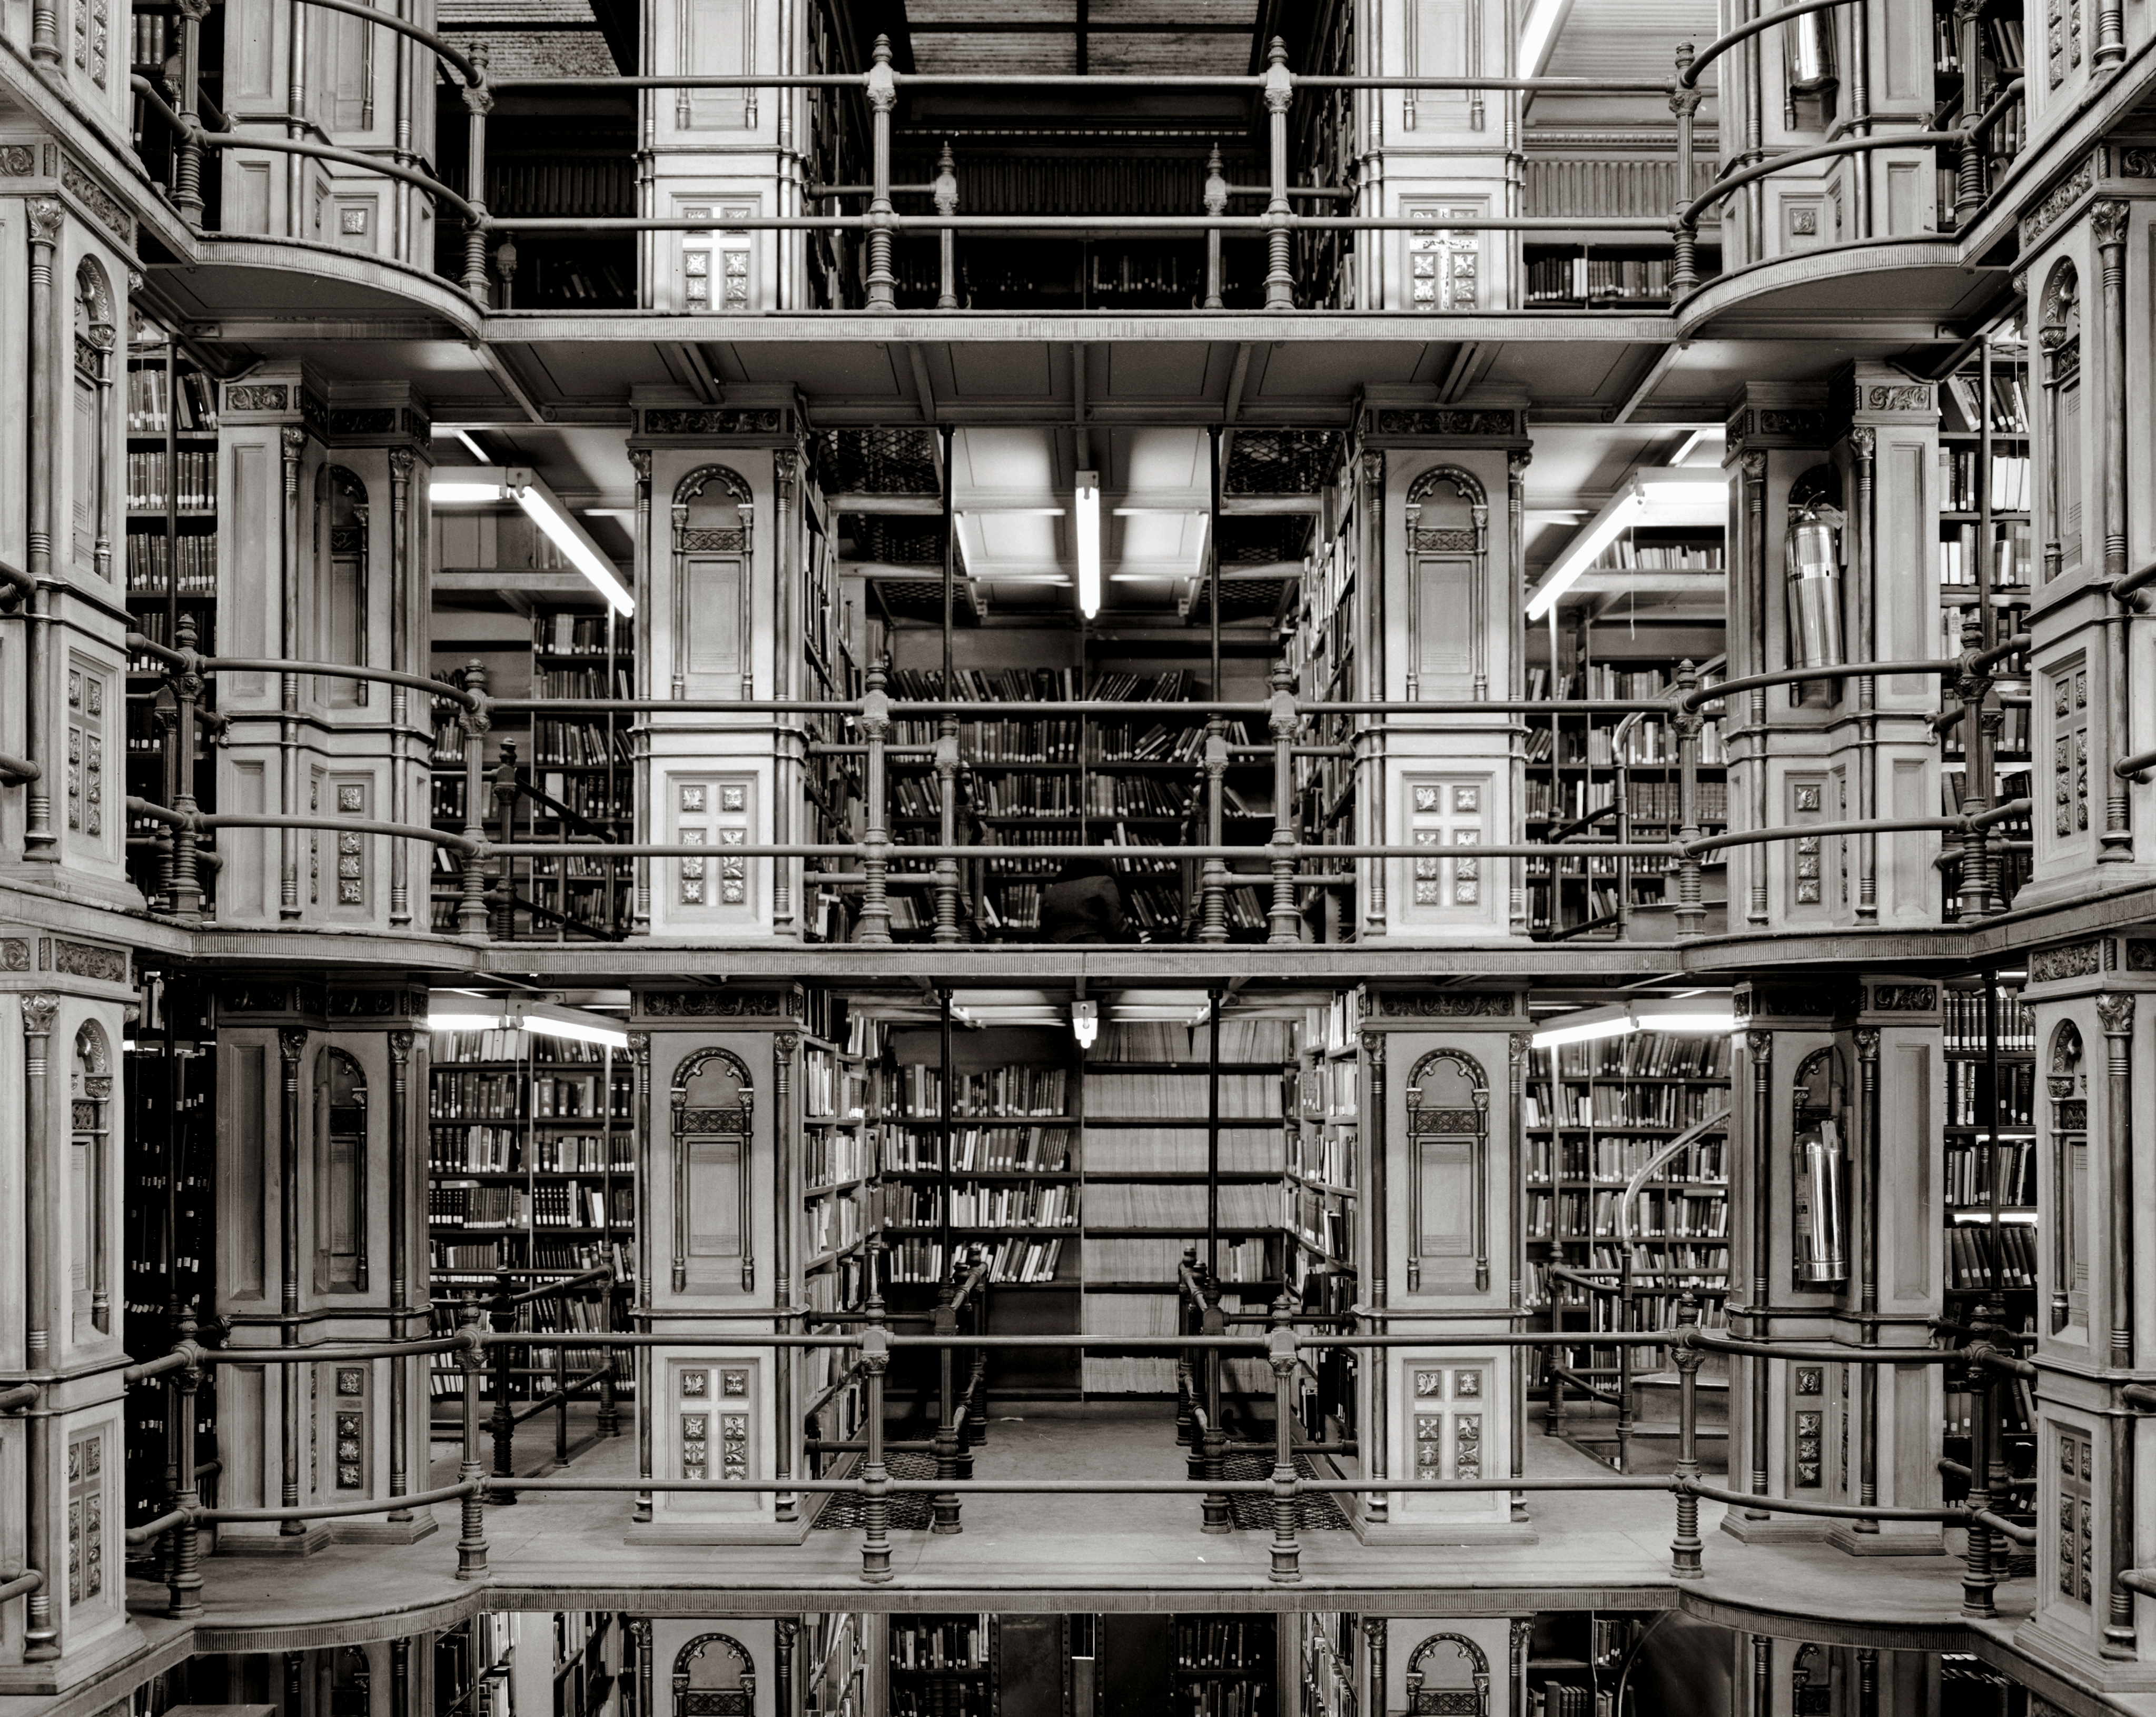 File:Riggs Library - Georgetown University.jpg - Wikimedia Commons